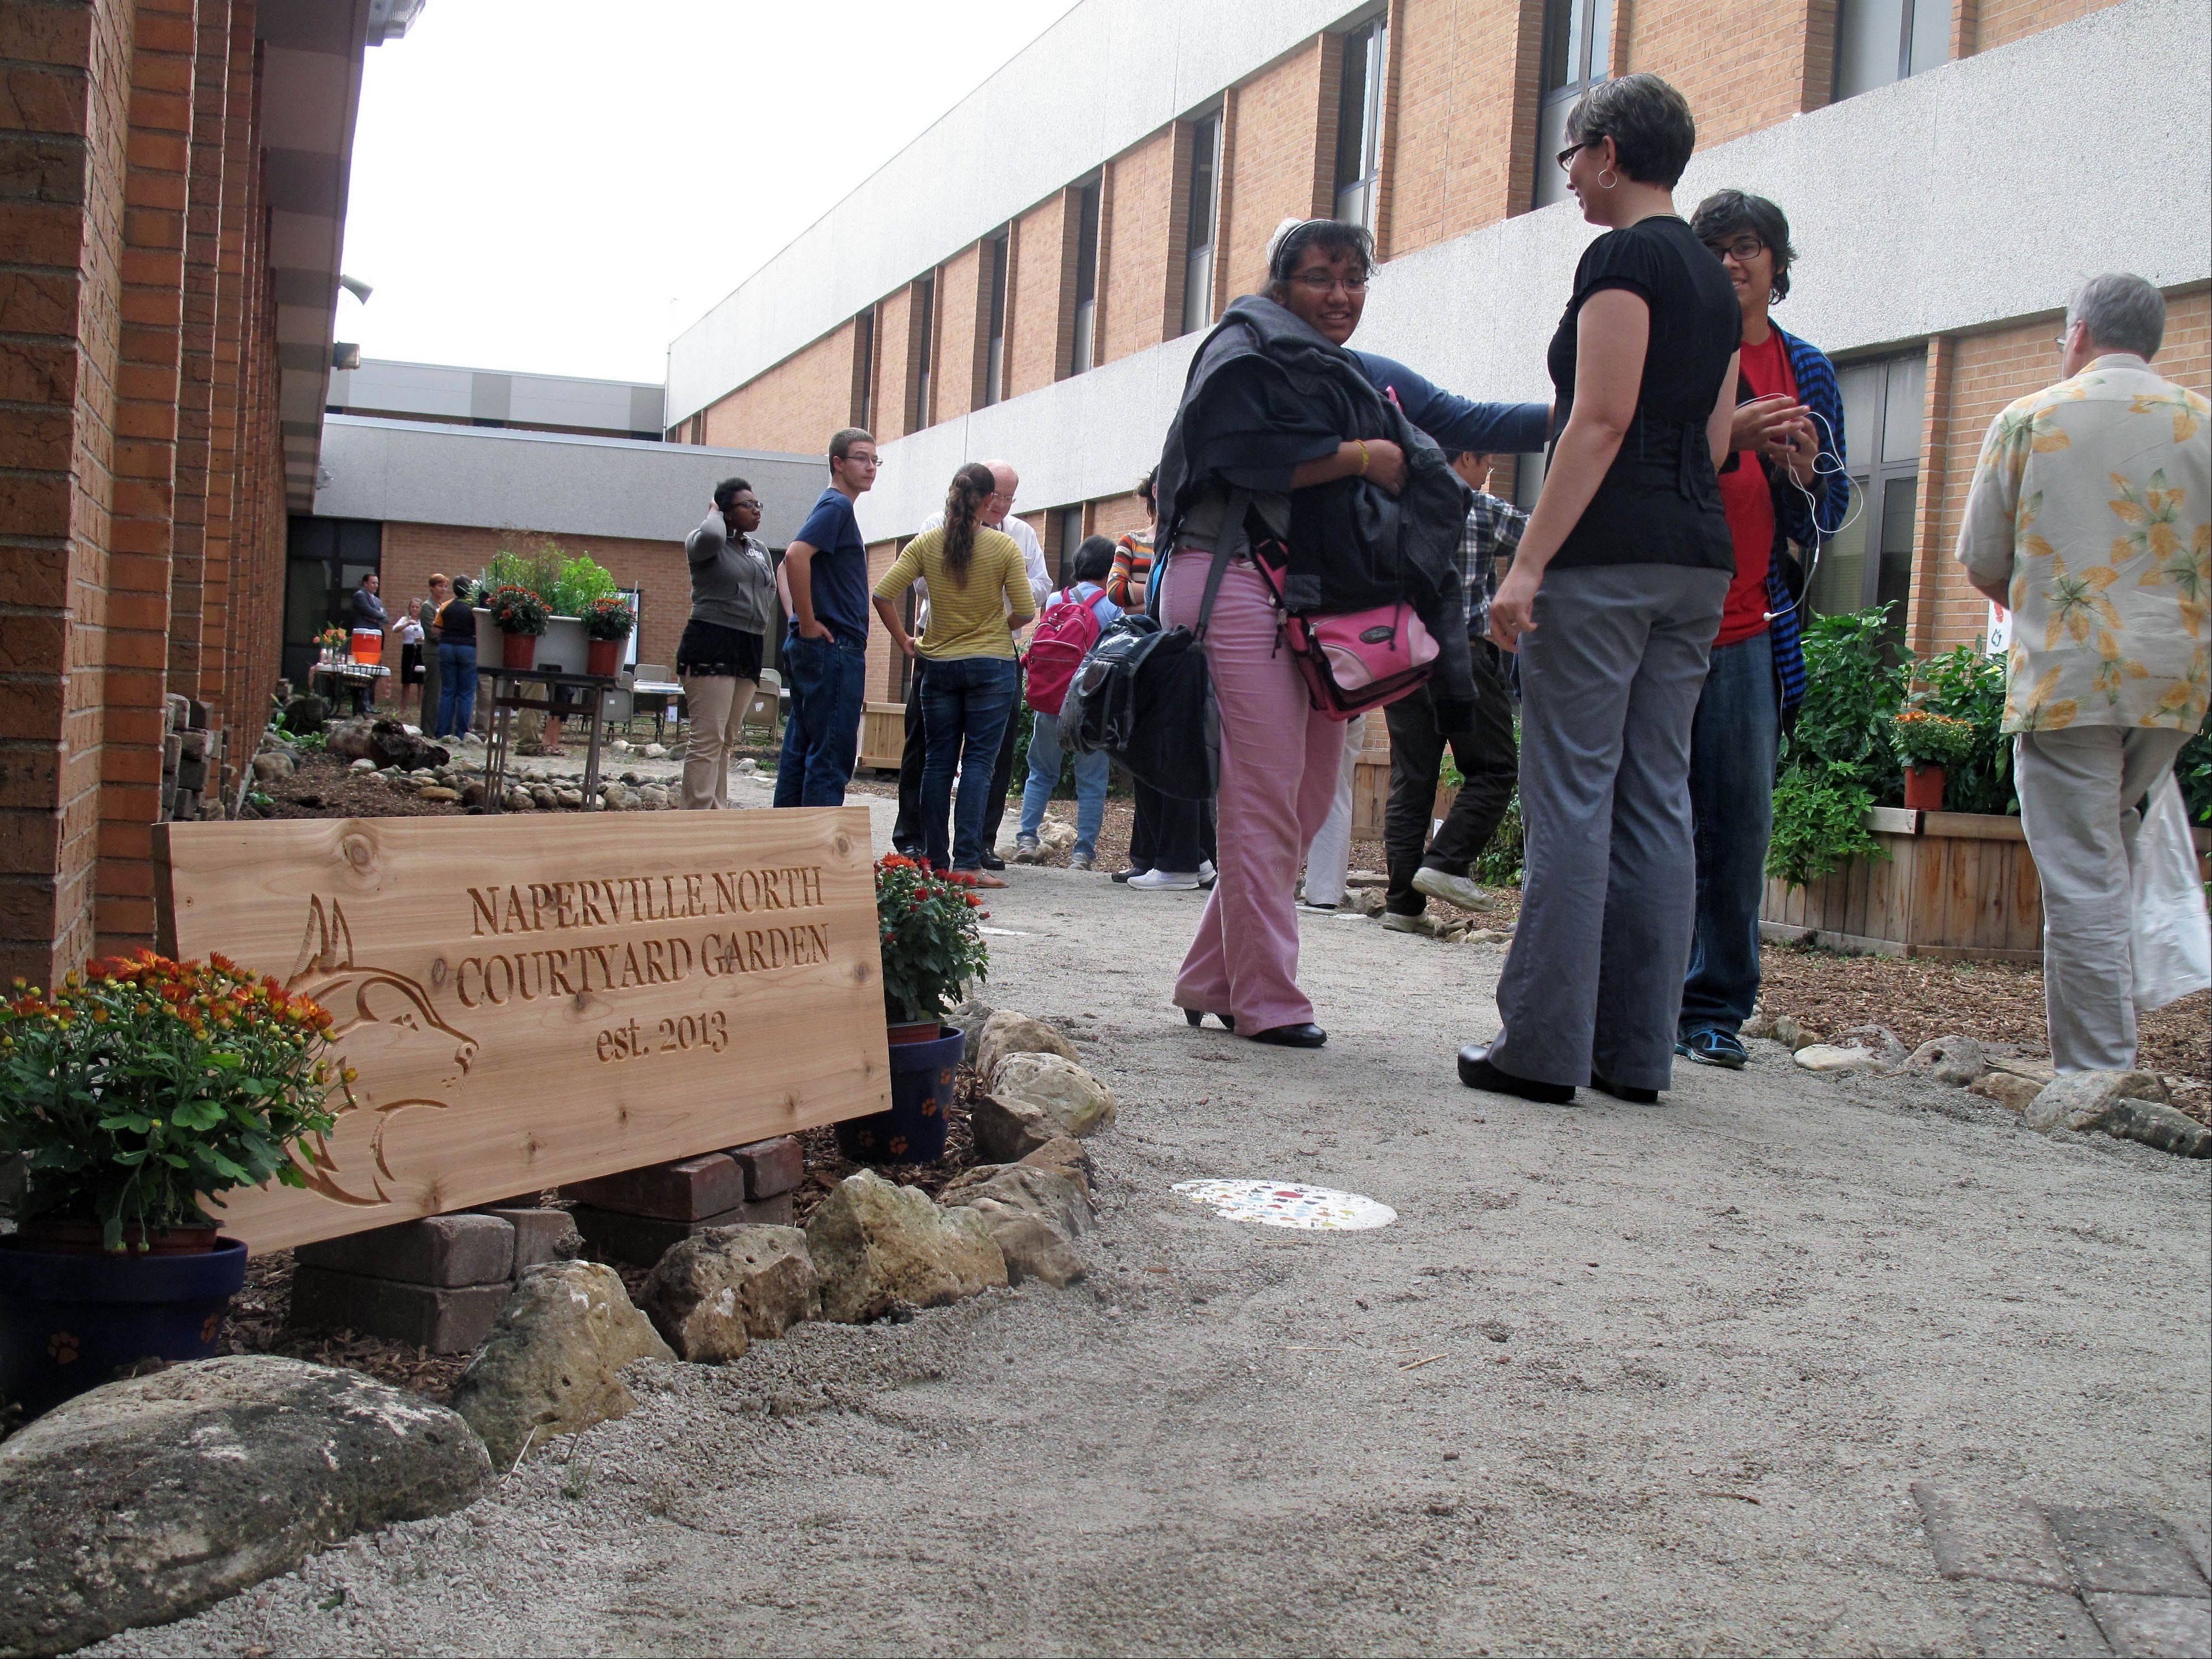 Naperville North students, teachers and parents show off the school's new courtyard garden Thursday during a celebration of the first harvest. The garden was tended by special education students and horticulture club members.